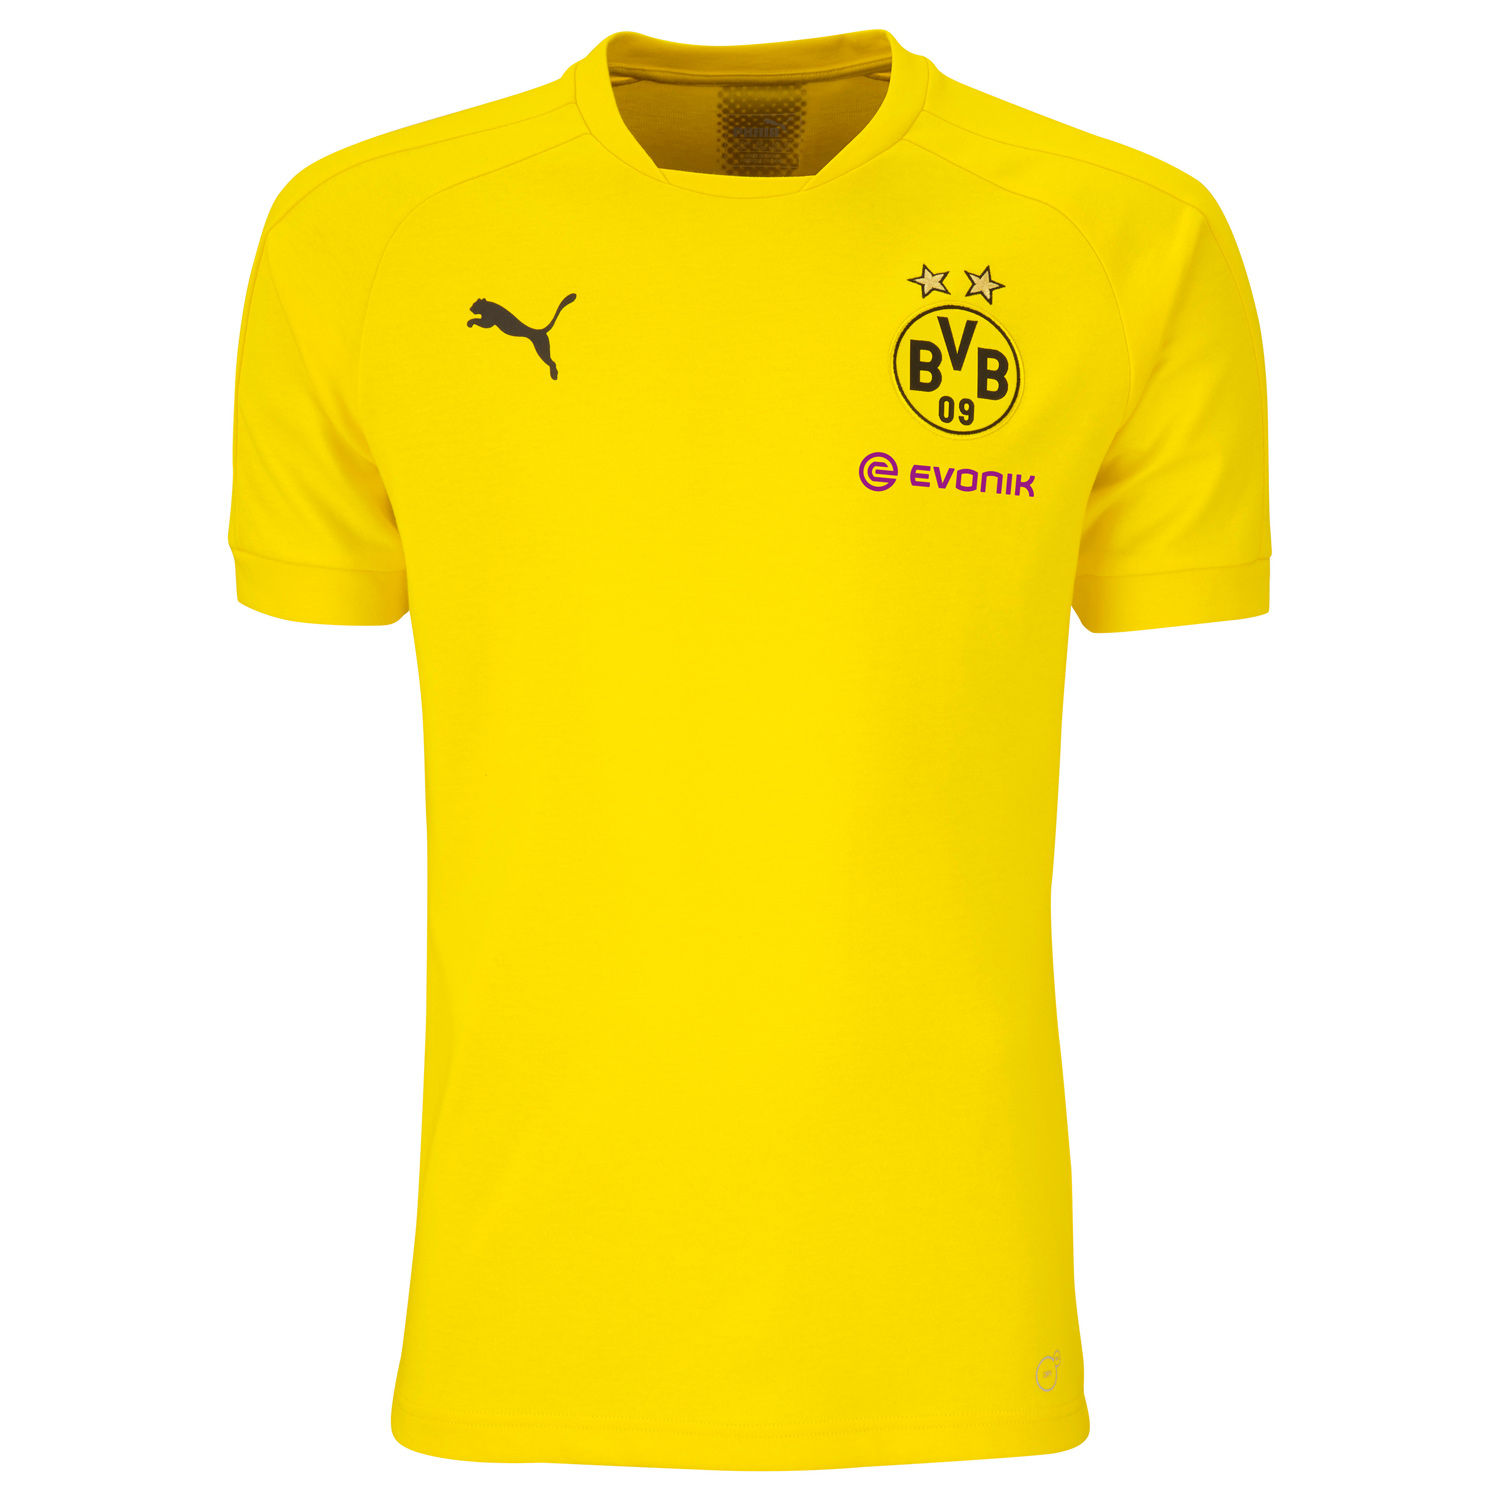 puma bvb borussia dortmund herren casual tee mit sponsor. Black Bedroom Furniture Sets. Home Design Ideas